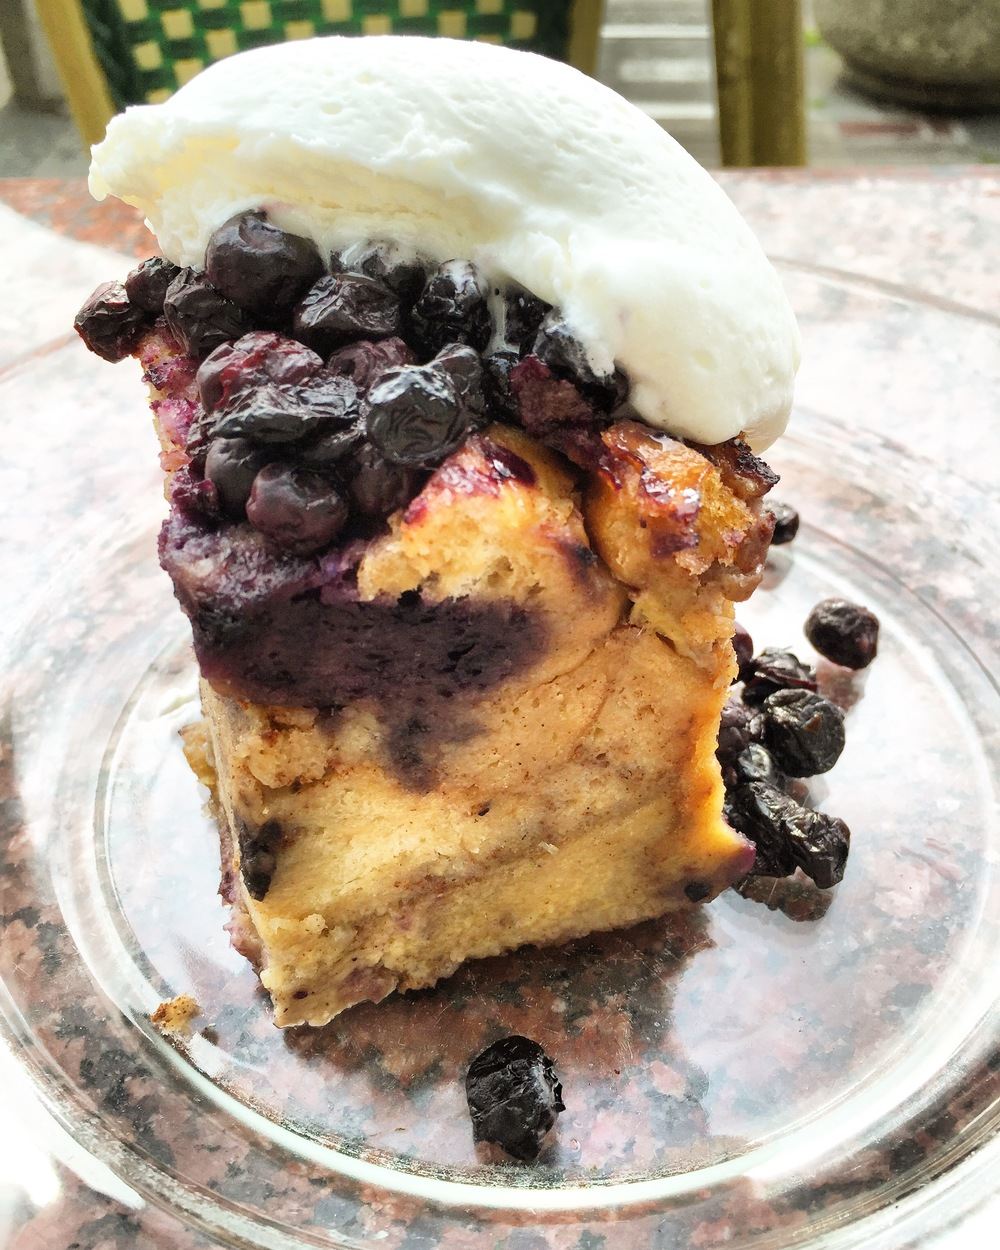 Who can pass up a beautiful bread pudding like this?! Not me. That's for sure.